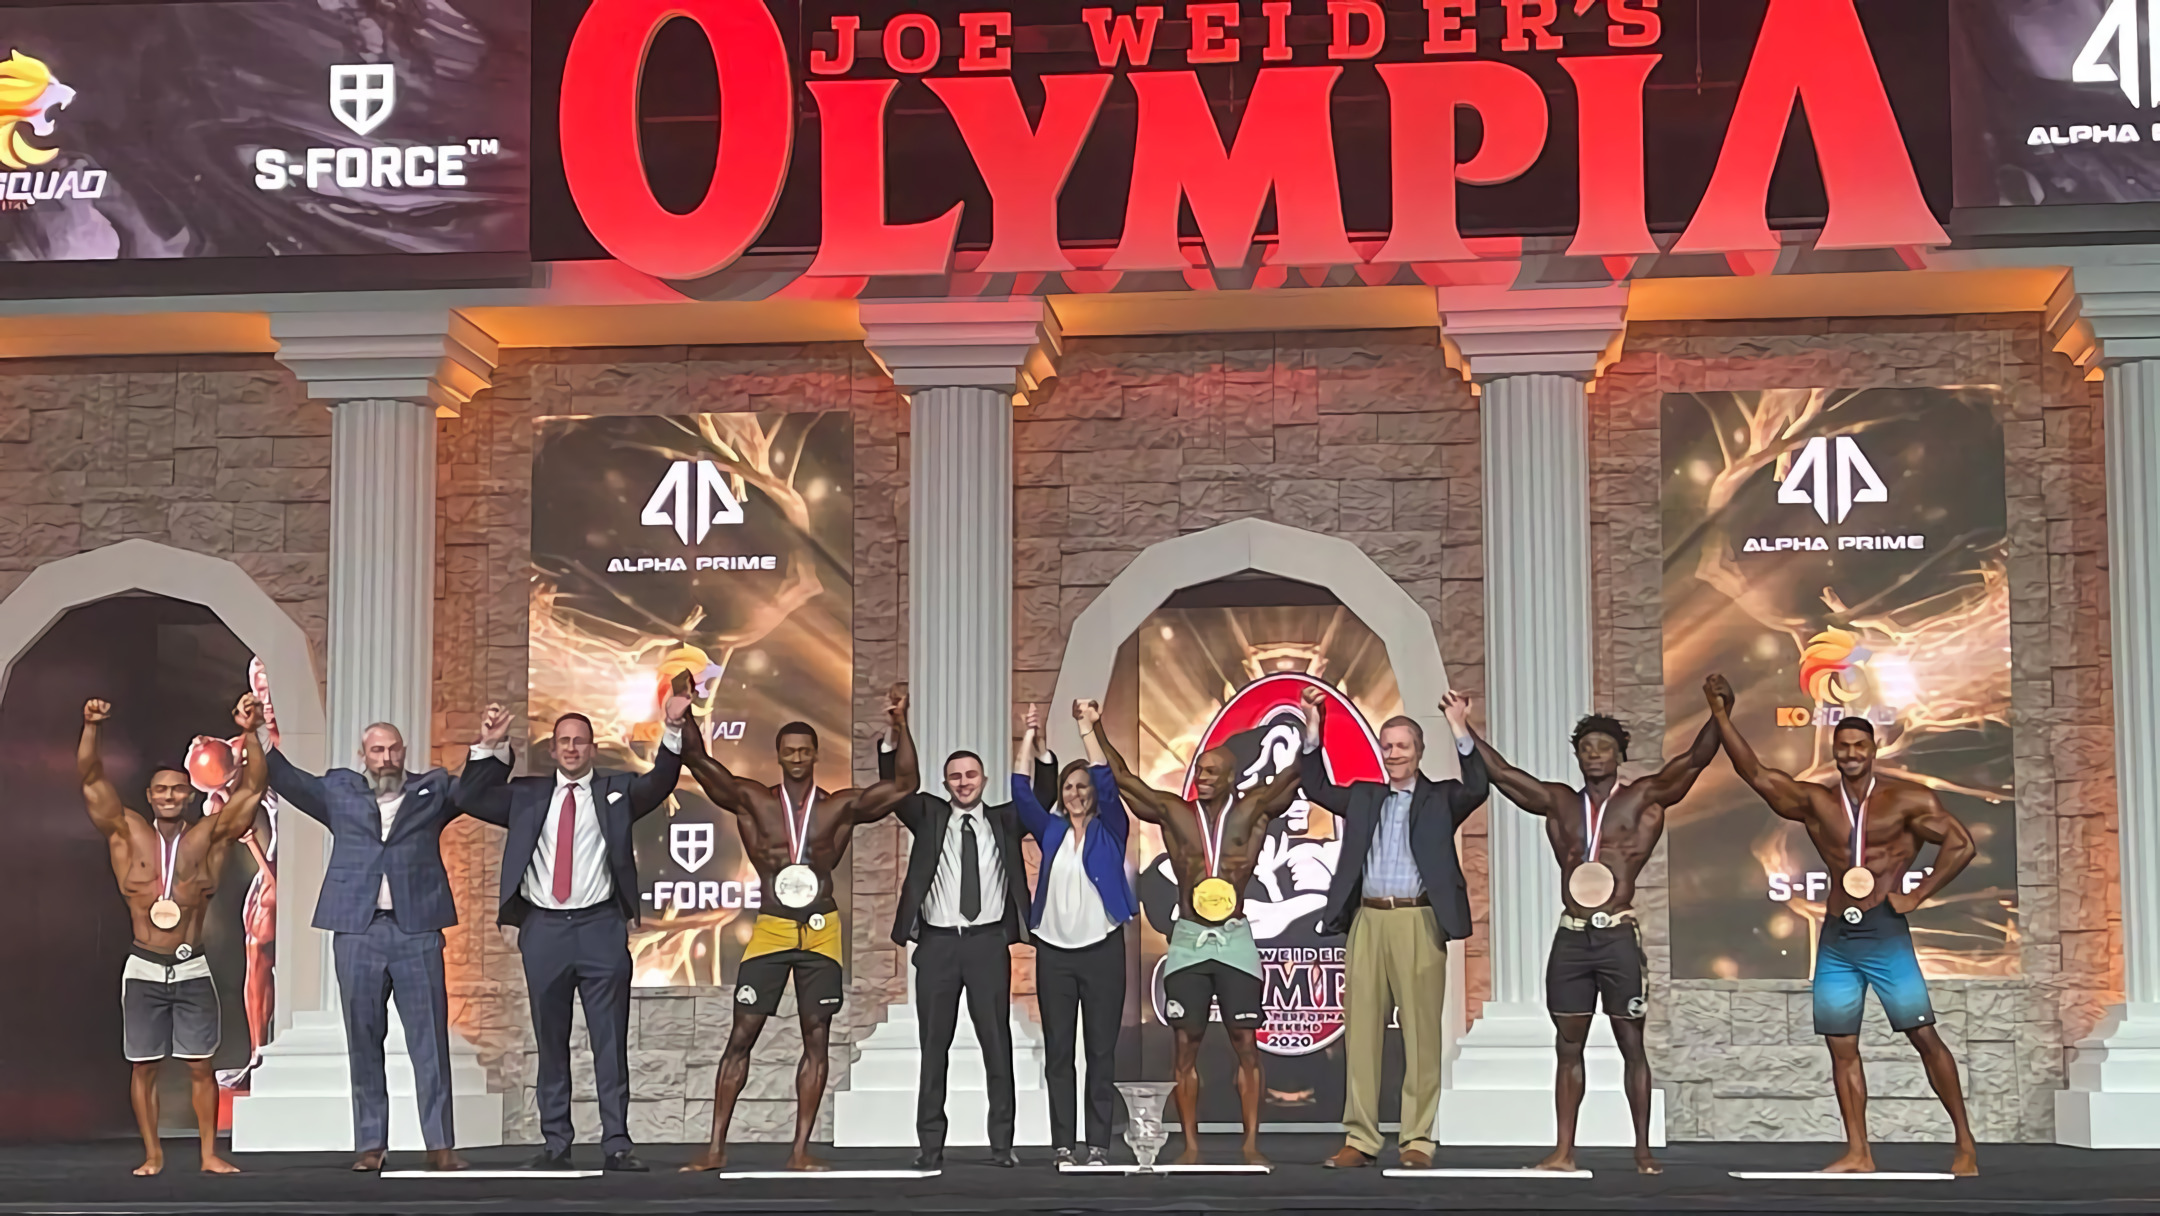 Men's Physique Mr. Olympia 2020 Awards